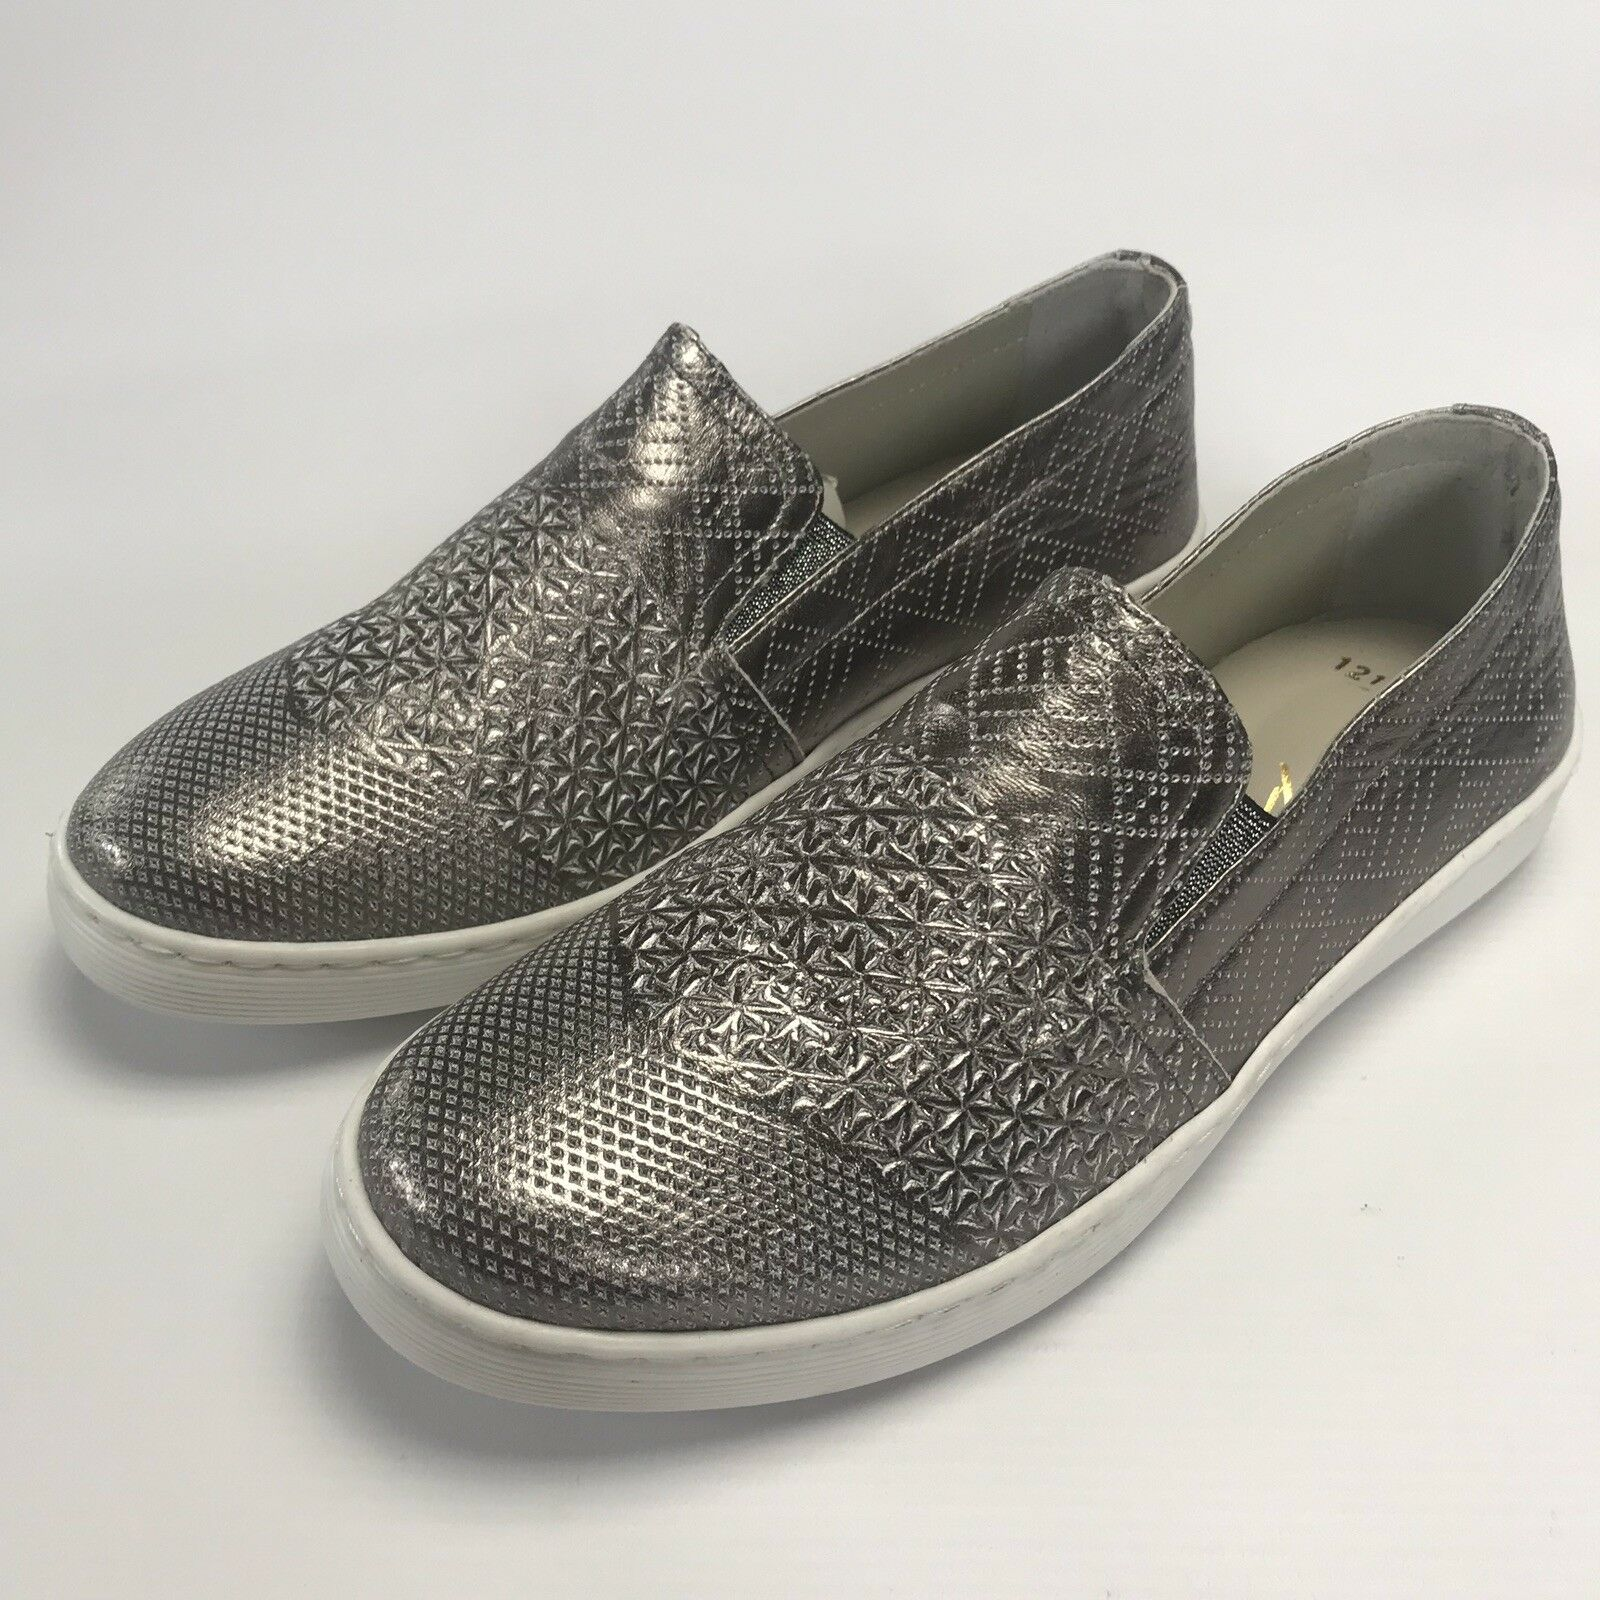 Andrea Conti Womens shoes Loafers Flats 1783404 UK 5 EUR 38 Silver Leather